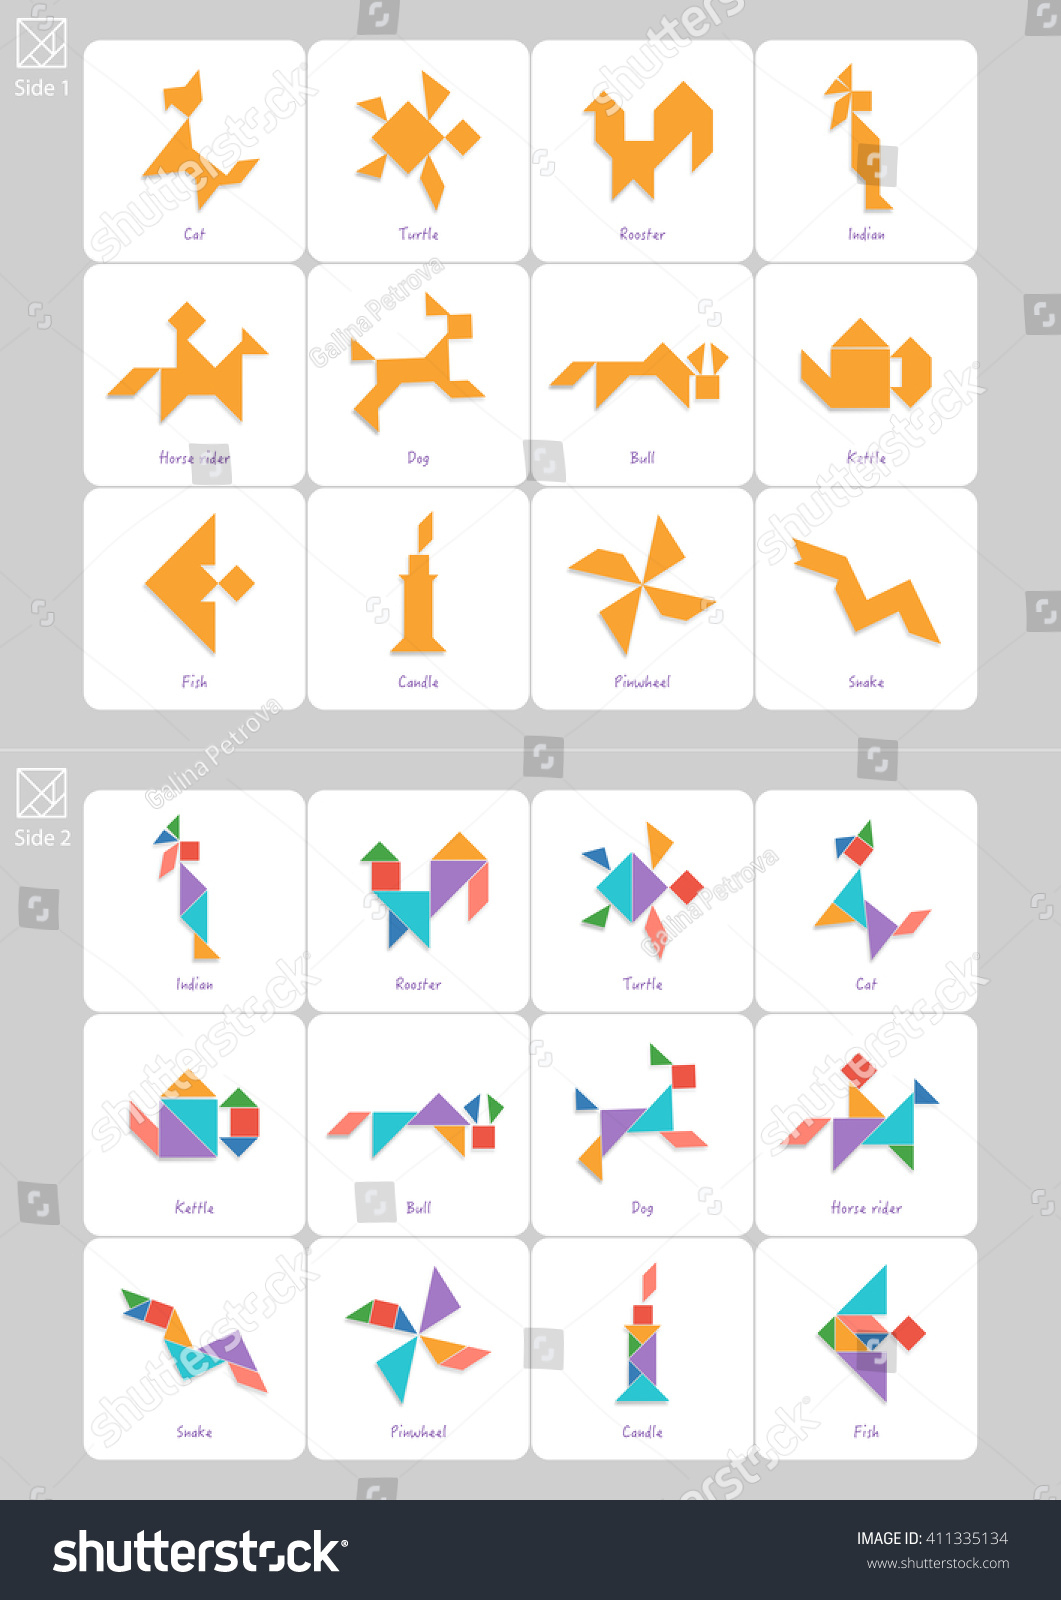 Tangram Set Task Solution Cards Captions Stock Vector (Royalty Free - Printable Tangram Puzzles And Solutions